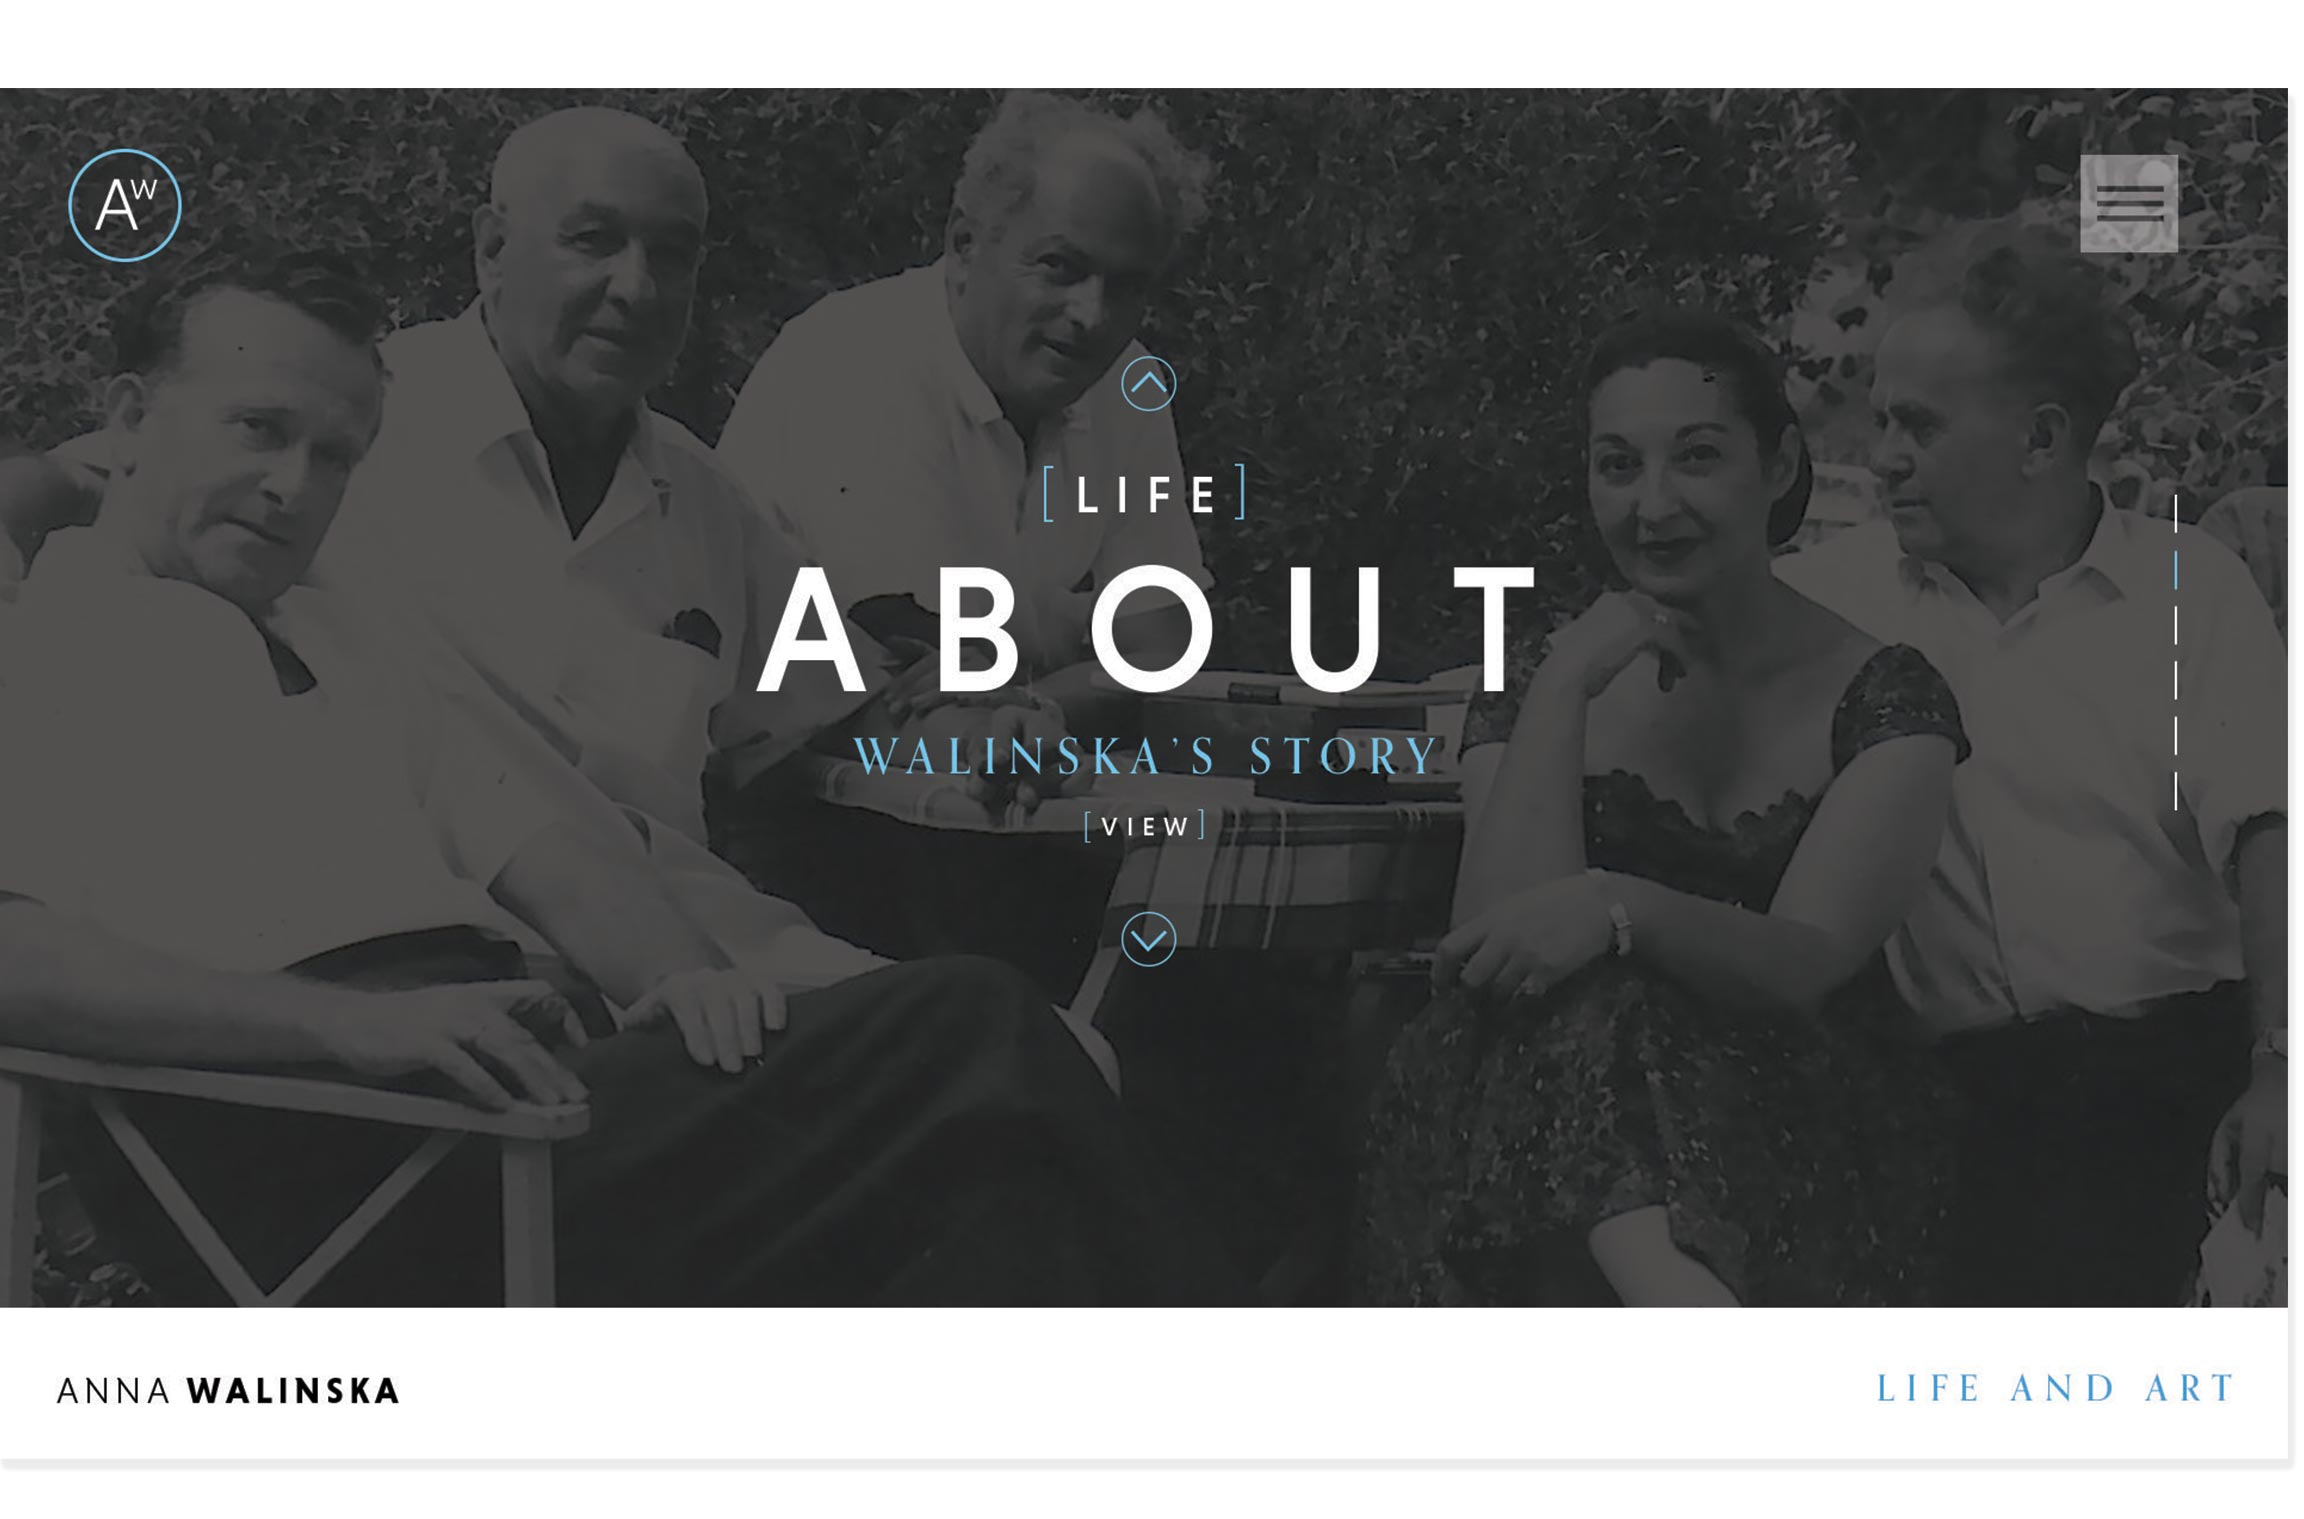 Anna Walinska website design About landing page